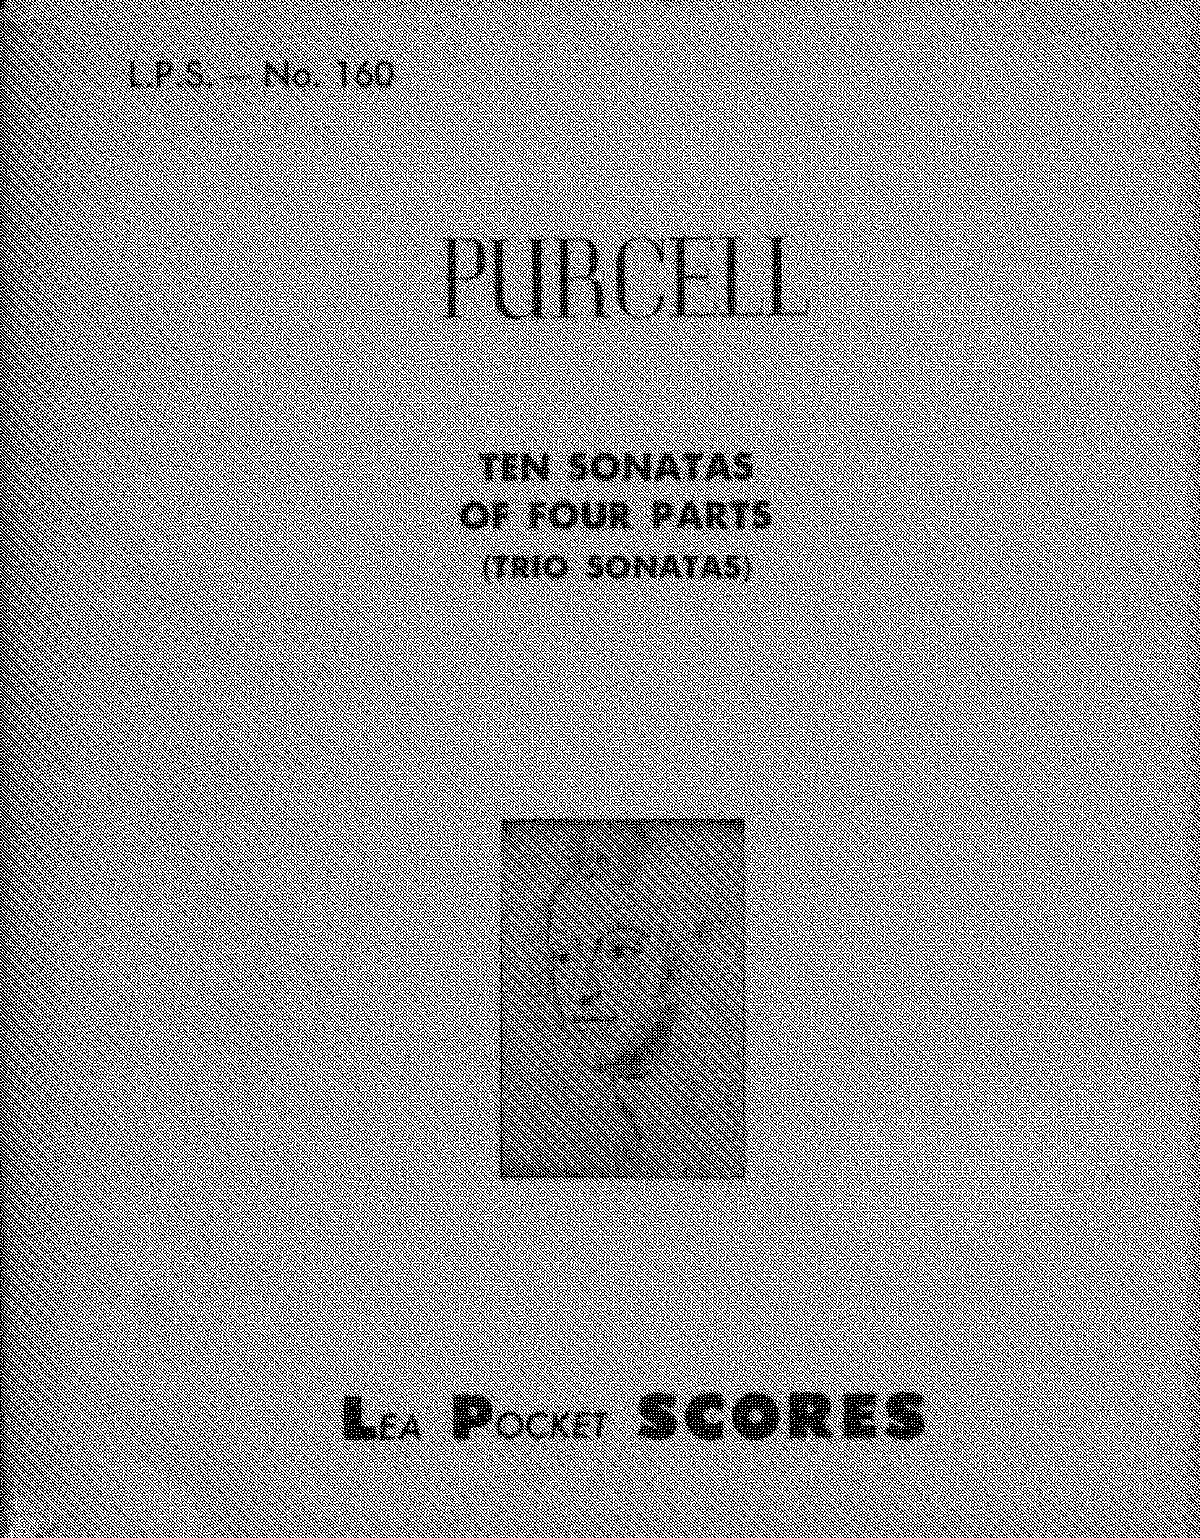 PMLP85784-13730775-Ten-Sonatas-of-four-parts-Henry-Purcell.pdf